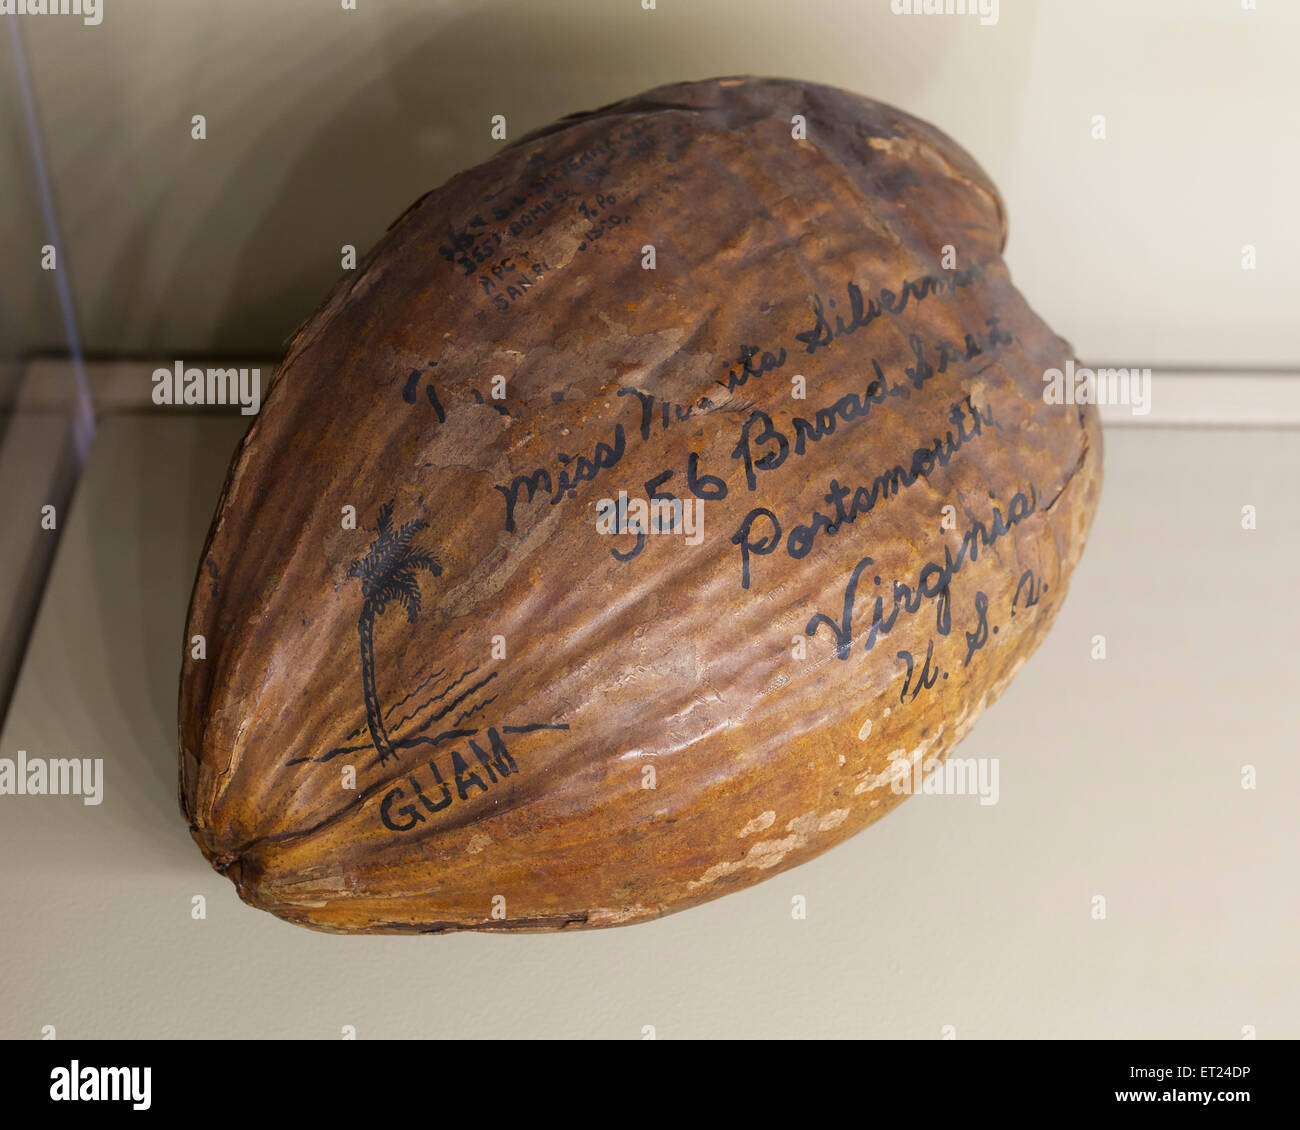 Coconut sent from Guam to Virginia by US Postal Service - USA - Stock Image